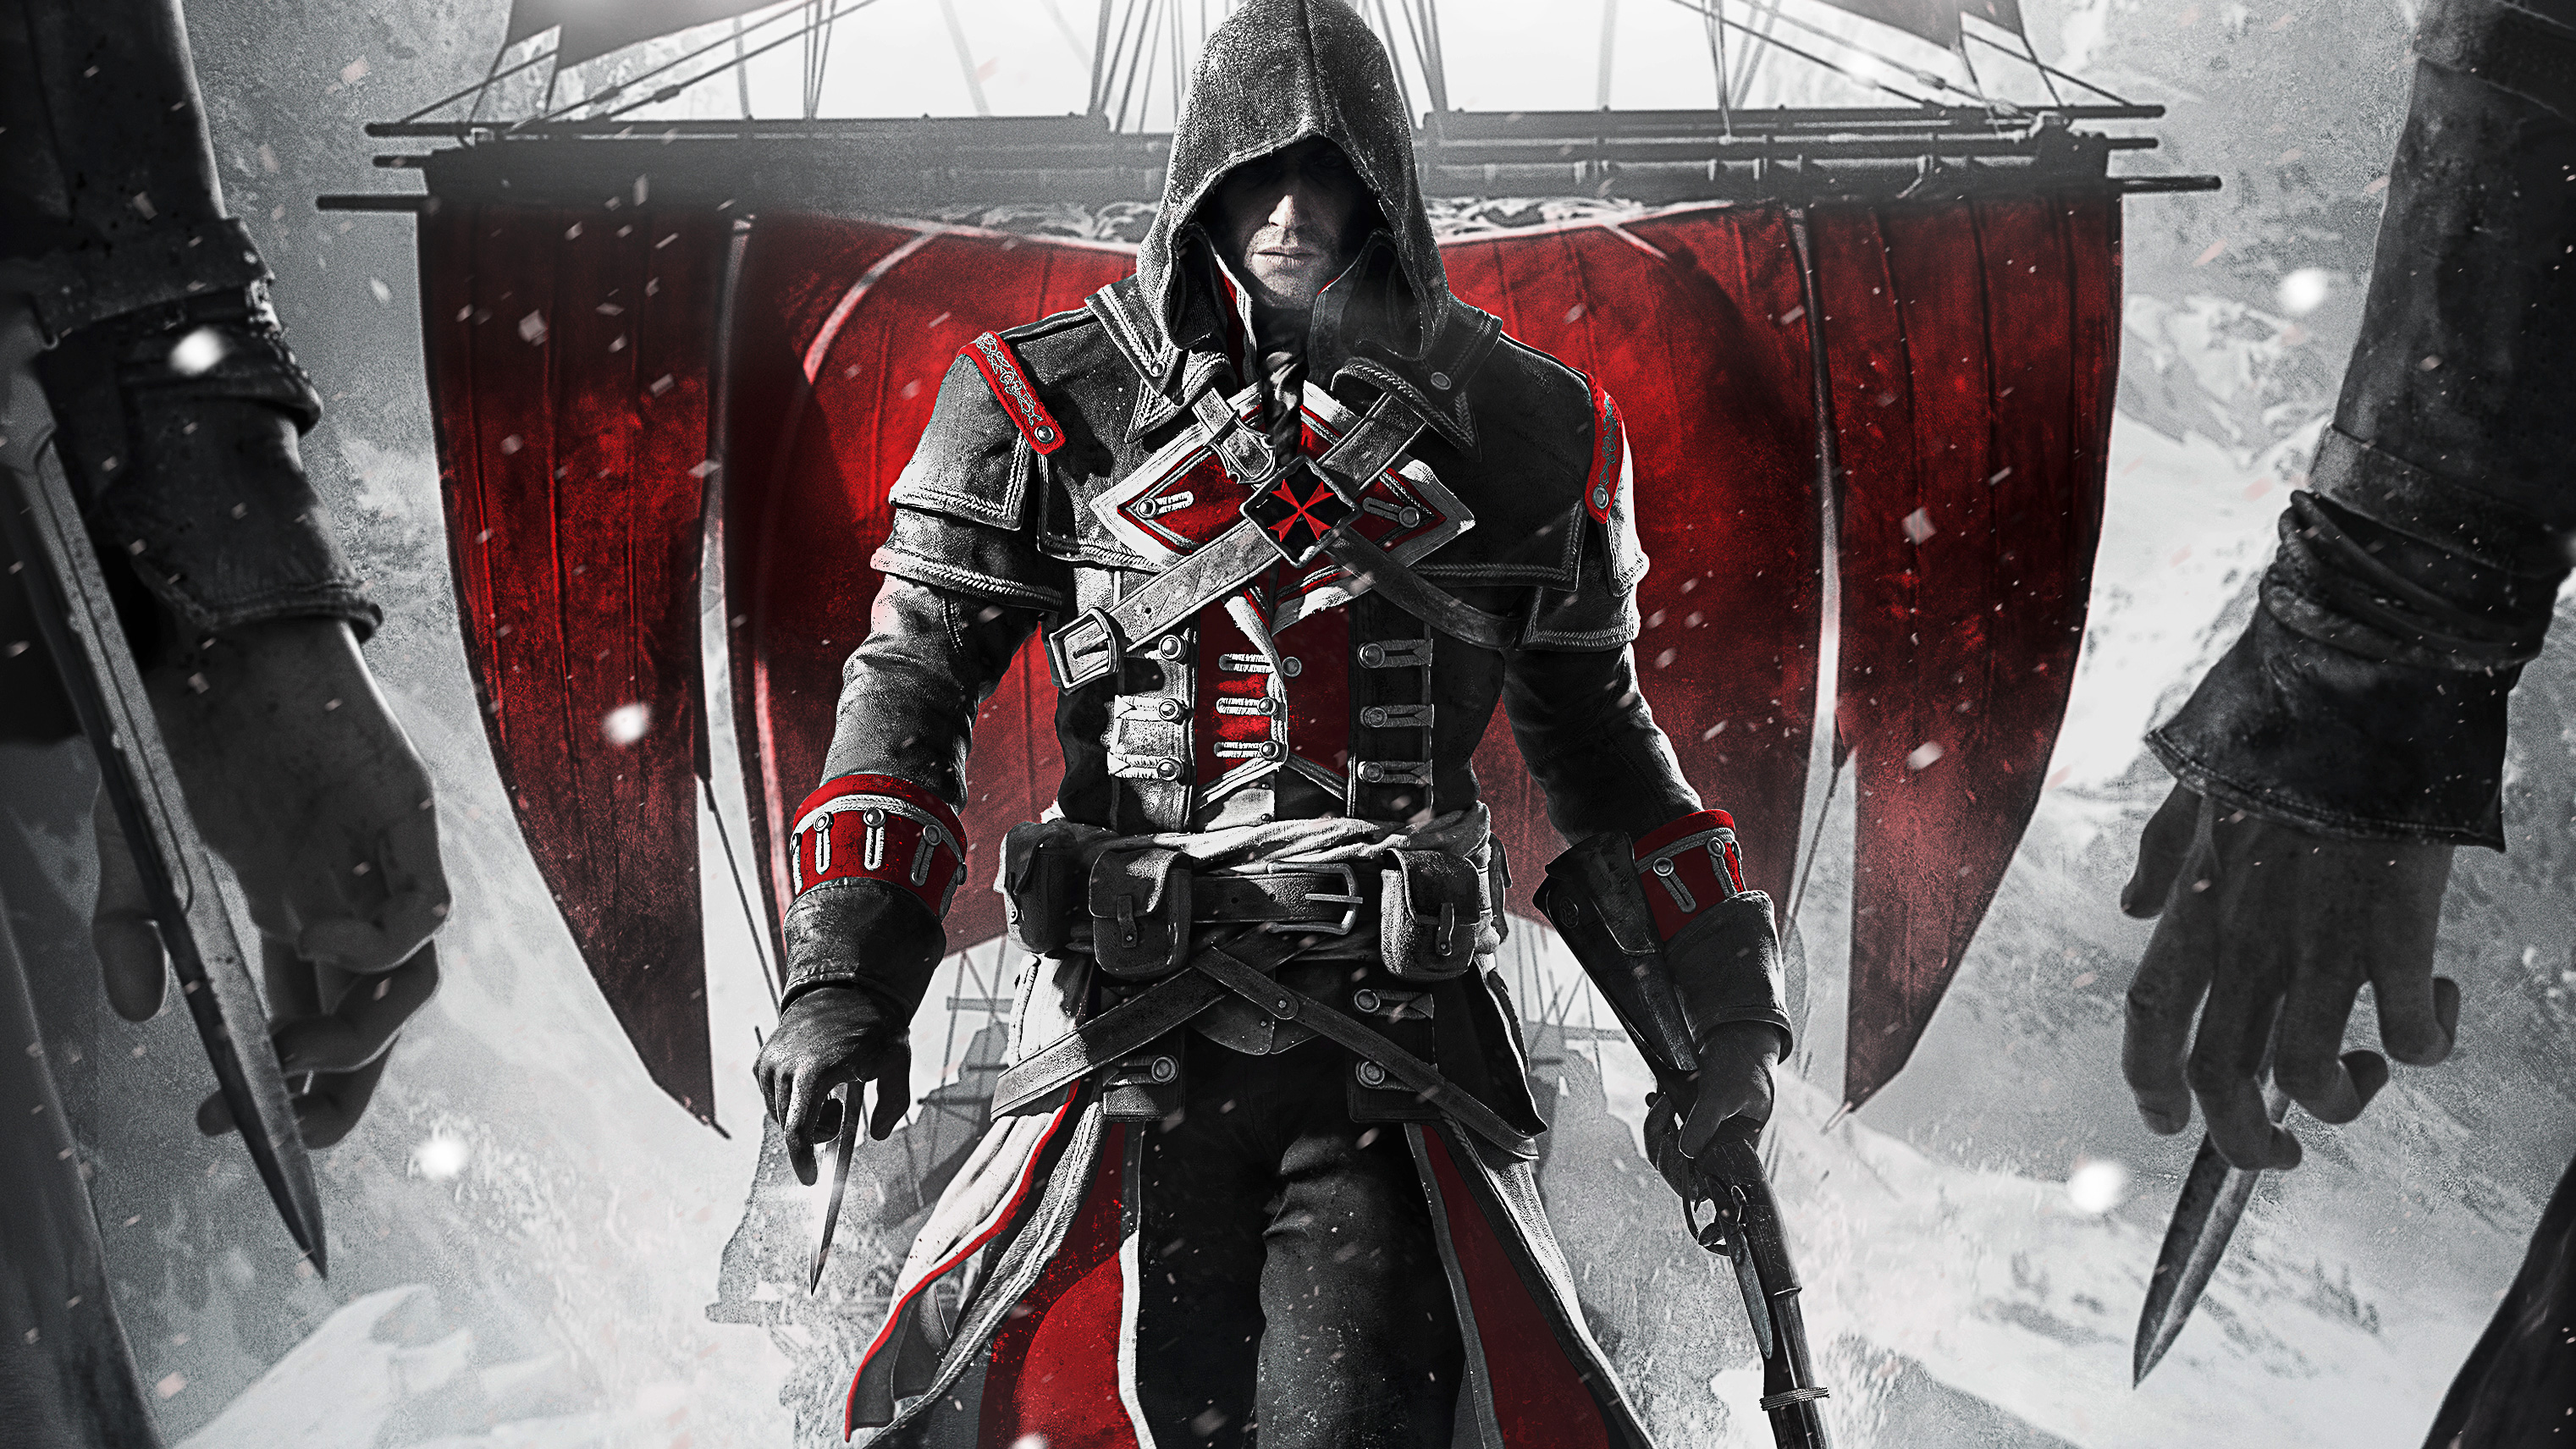 Assassin Creed Wallpaper Posted By Samantha Cunningham